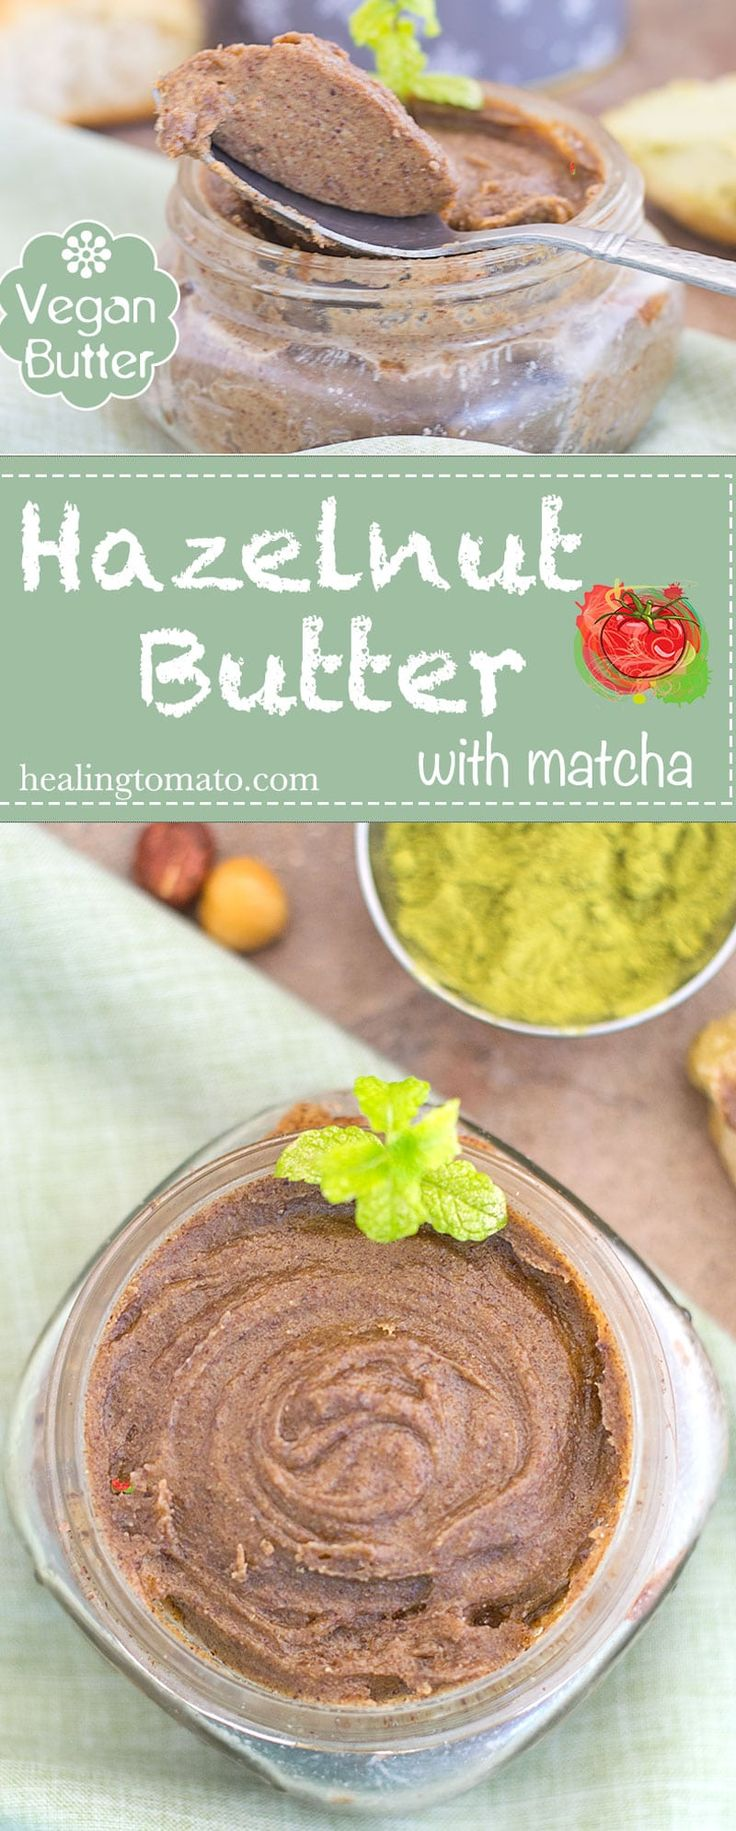 This matcha hazelnut butter is so easy to make and it is the perfect brunch or breakfast recipe.  The hazelnut butter takes only 15 minutes to make in the NutraMilk Machine and its delicious. #ad #thenutramilk @thenutramilk #PMedia